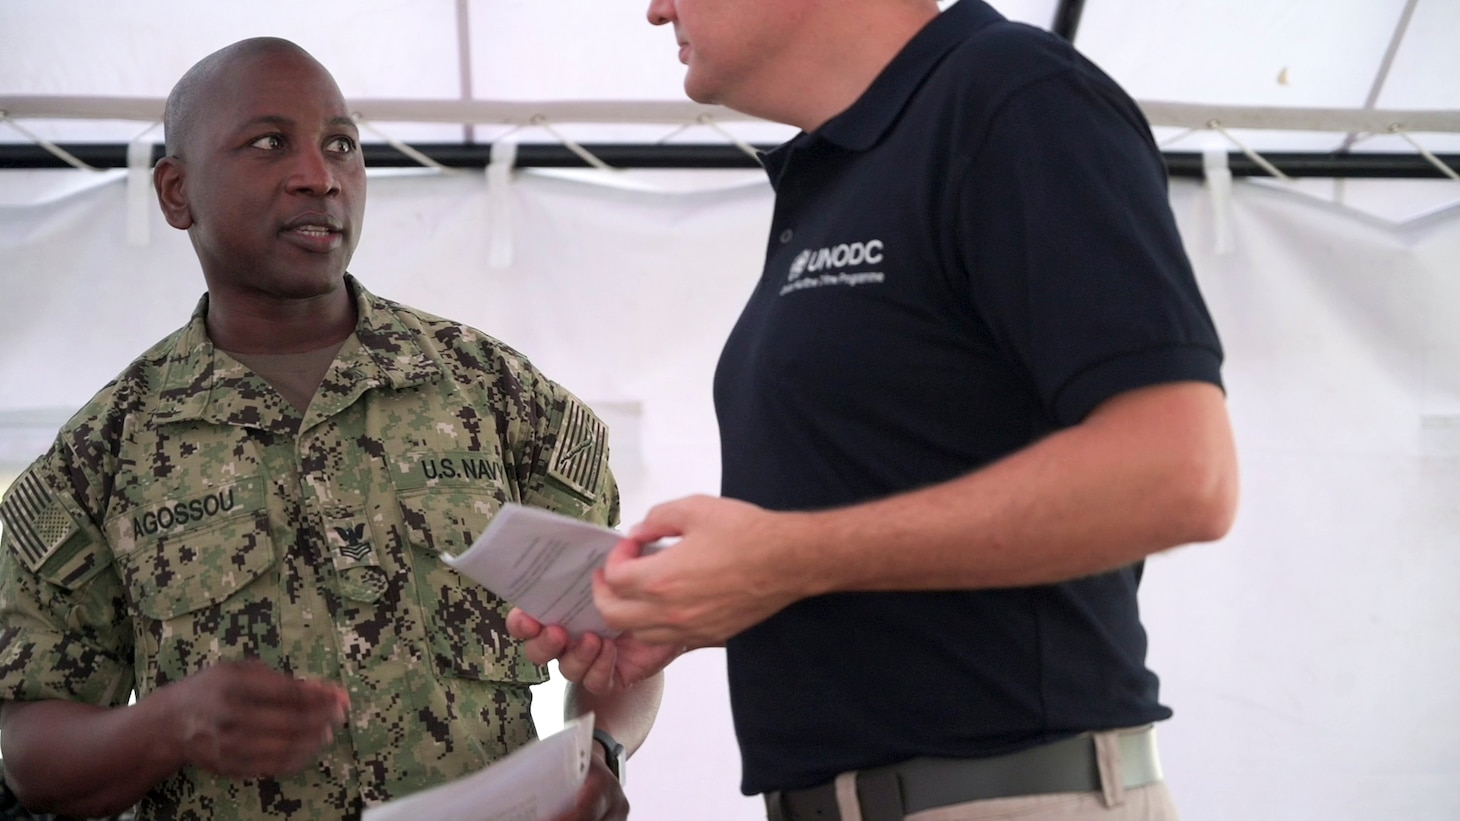 (Aug. 2, 2021) Hospital Corpsman 1st Class Marcelin Aggossou translates during a training evolution as part of Cutlass Express 2021 in East Africa, Aug. 2, 2021. Cutlass Express is designed to improve regional cooperation, maritime domain awareness and information sharing practices to increase capabilities between the U.S., East African and Western Indian Ocean nations to counter illicit maritime activity.